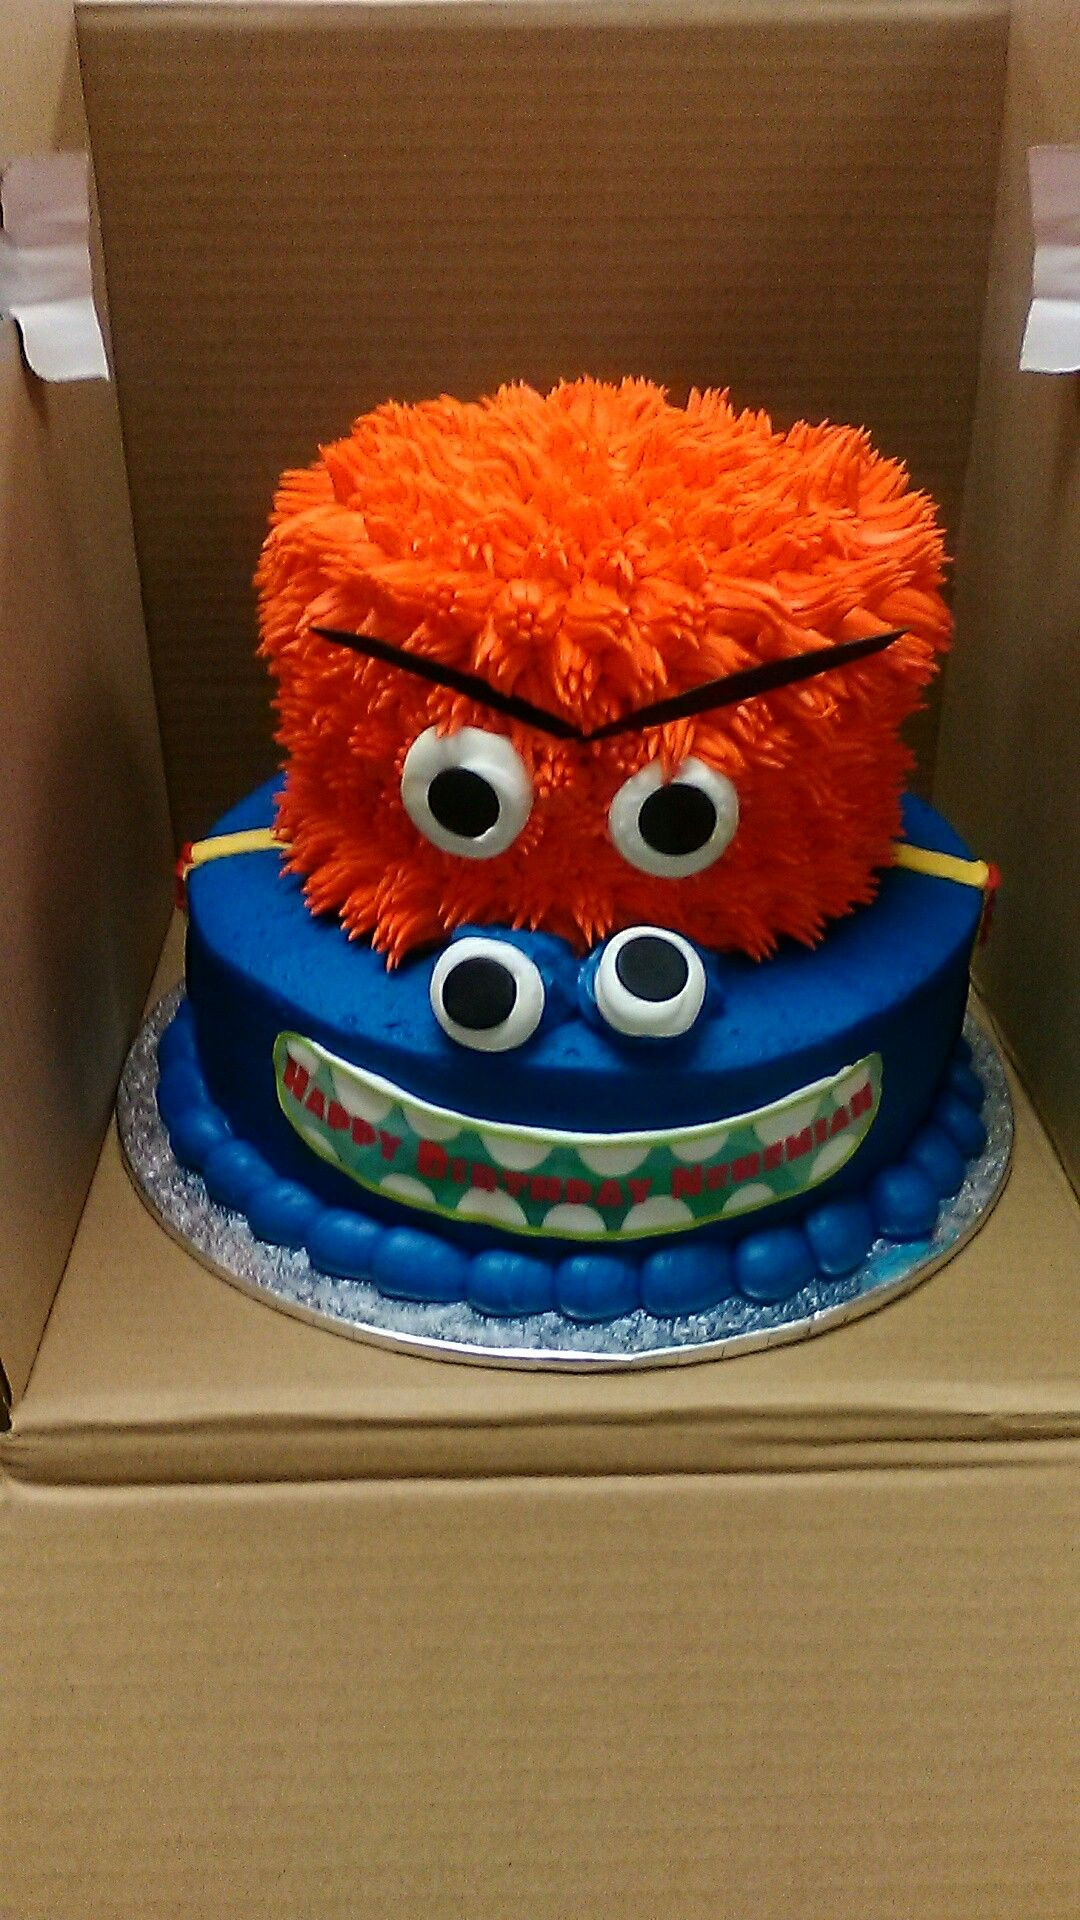 2 Tier Monster Theme Buttercream Birthday Cake Walmart